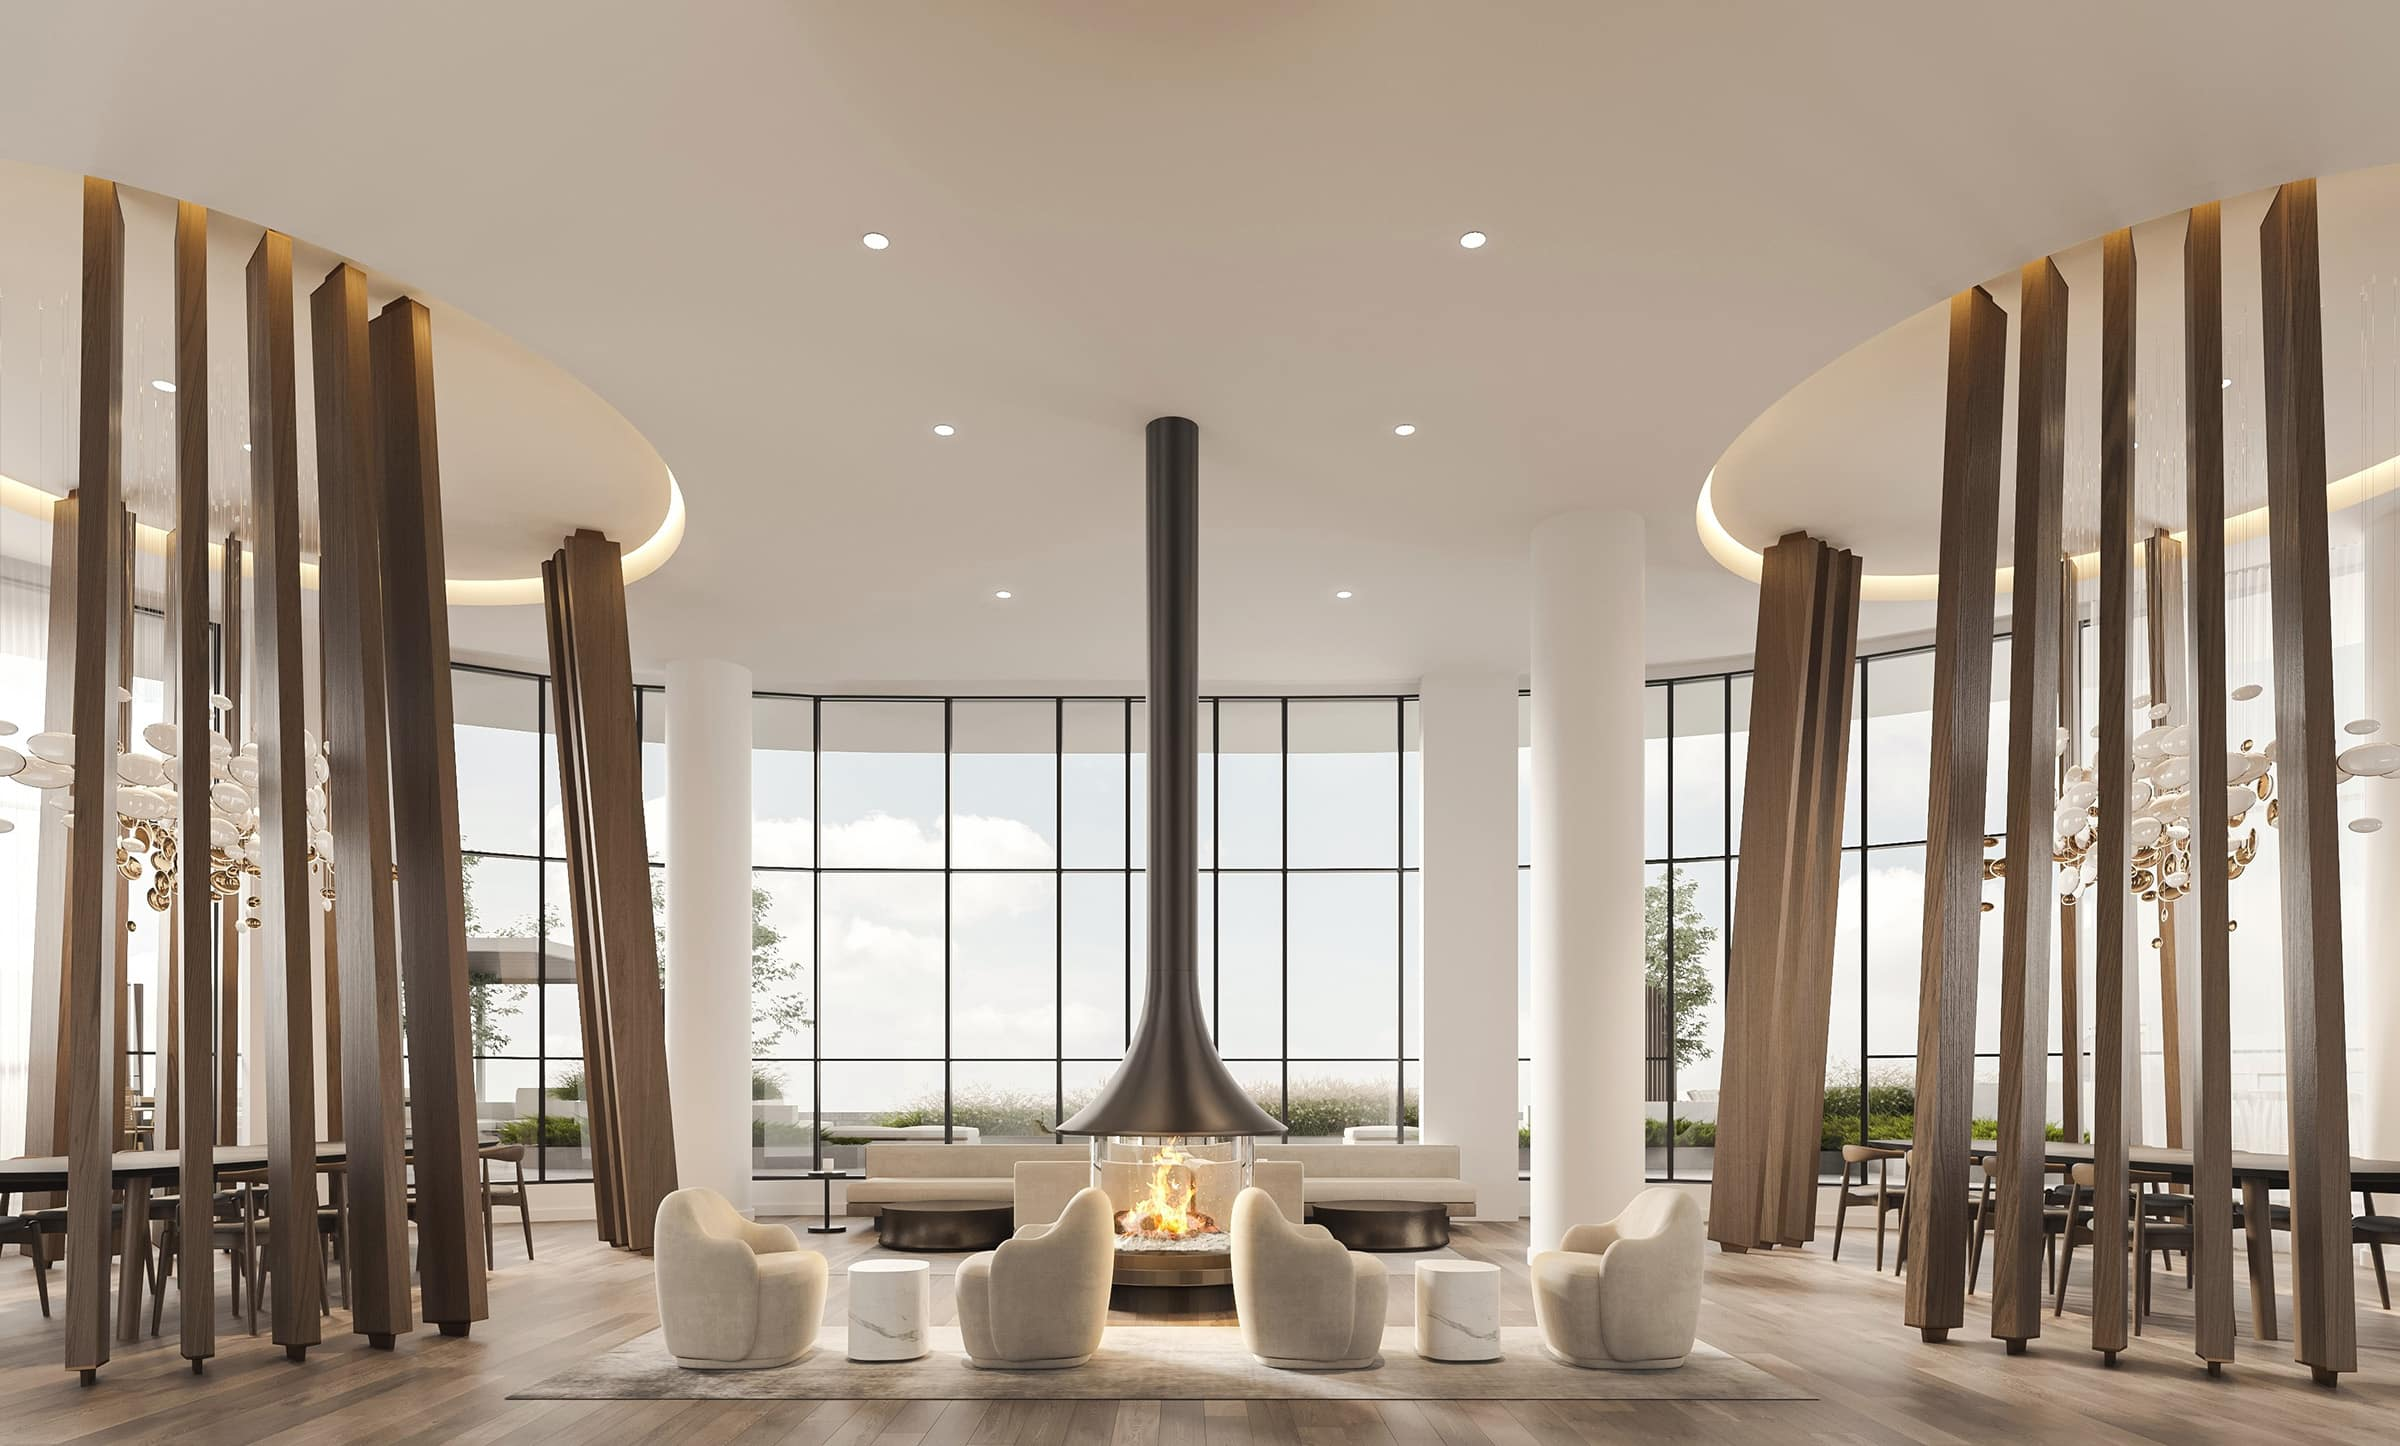 [object object] Downtown Mississauga New Condos For Sale alba condos 1 fairview rd e mississauga hurontario lrt party room lounge